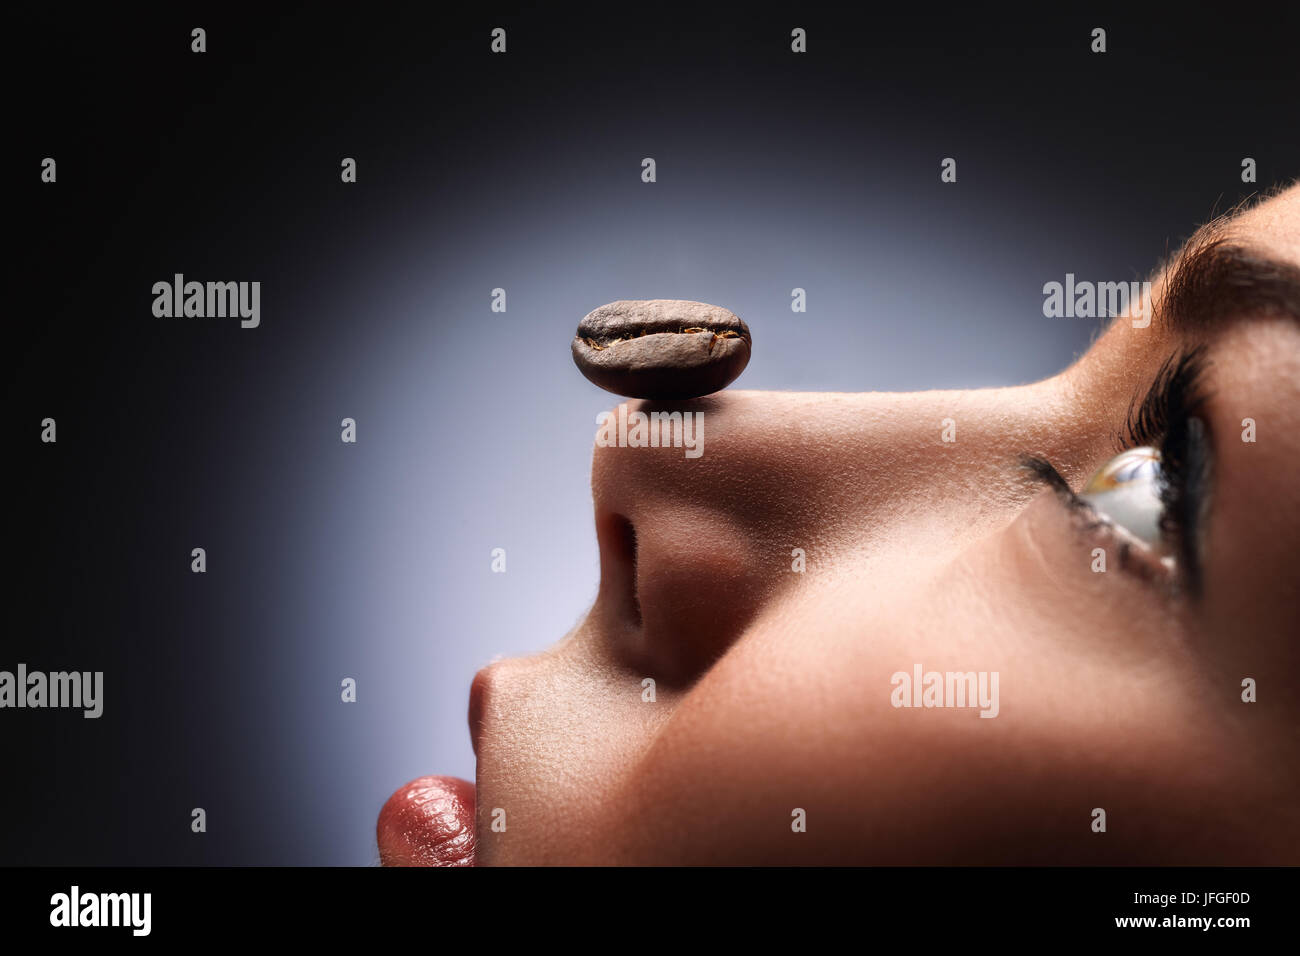 Smell and relax. - Stock Image